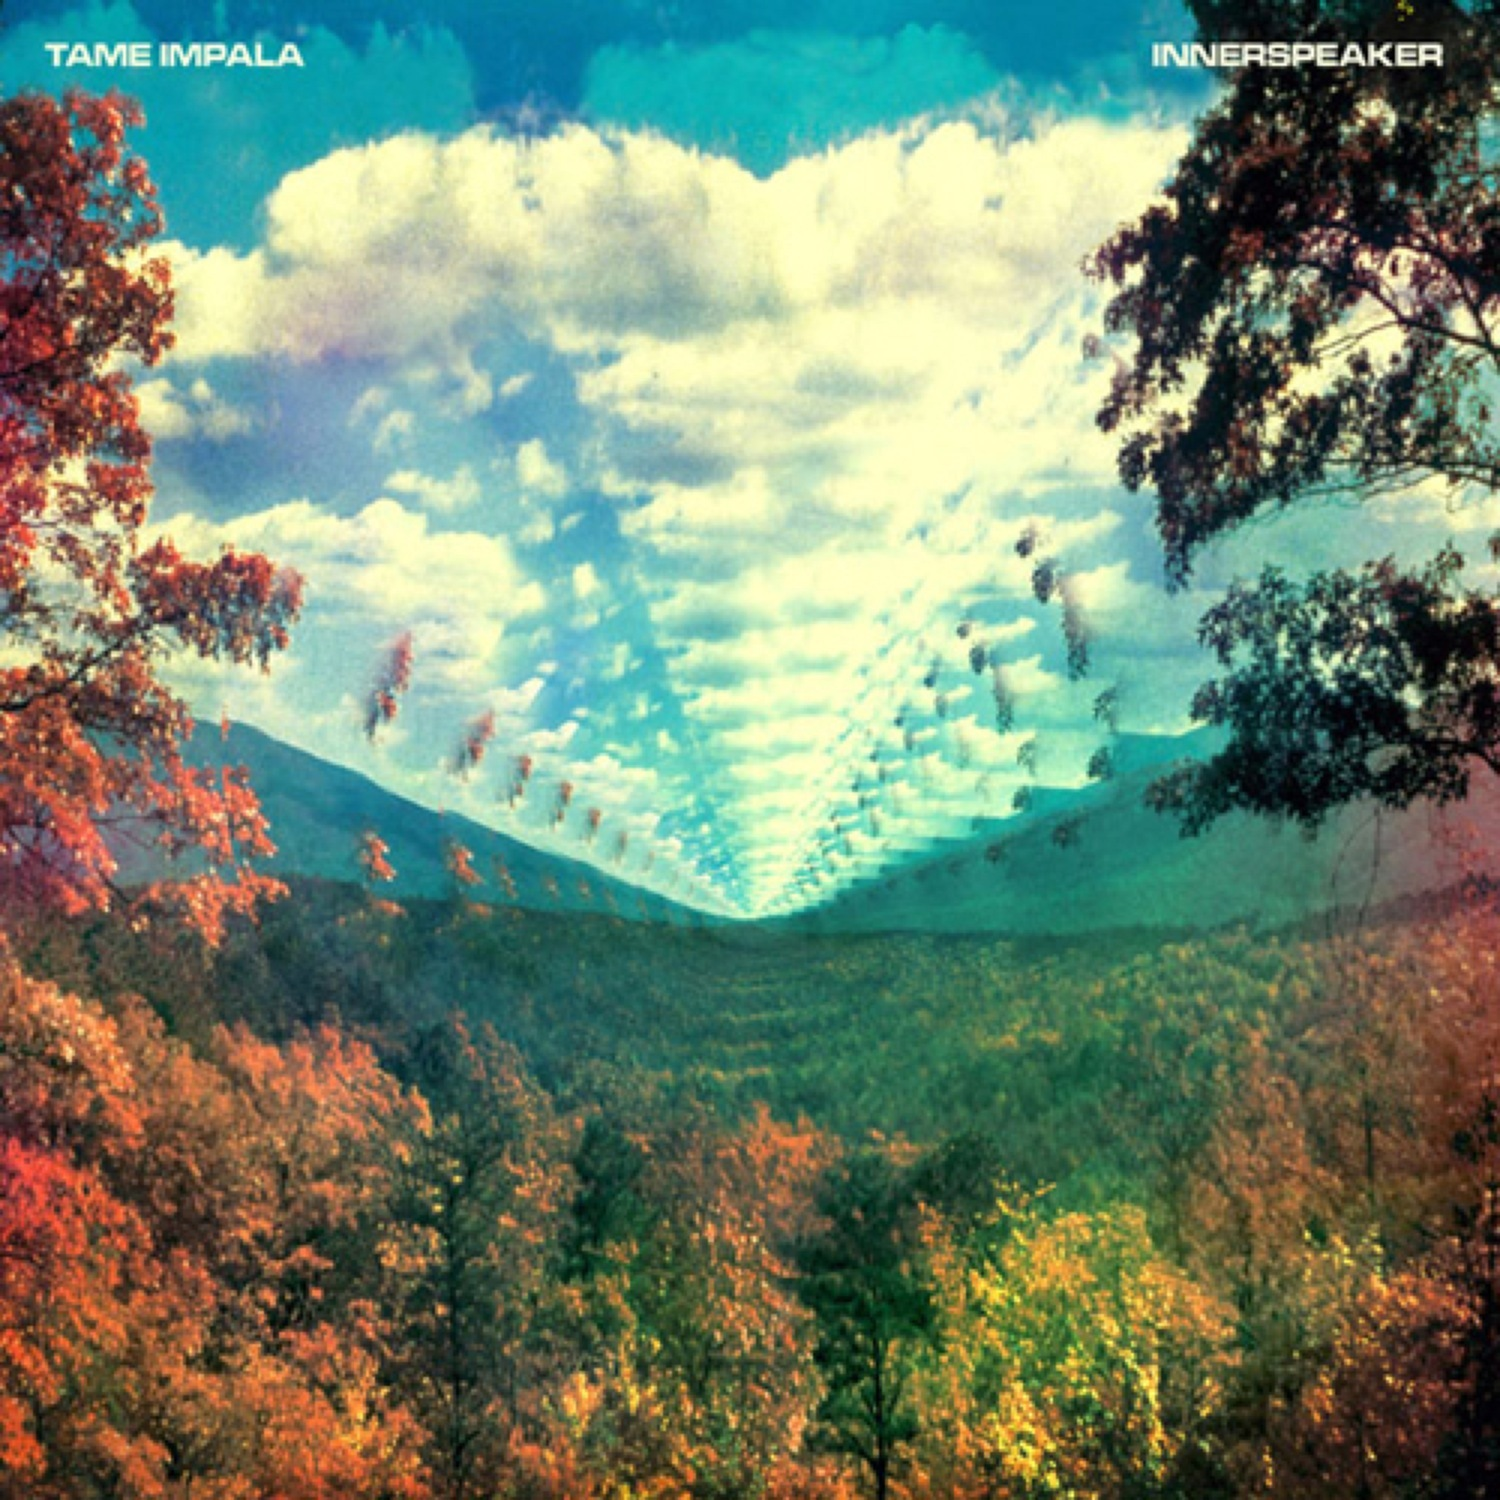 innerspeaker found This on HD Wallpaper